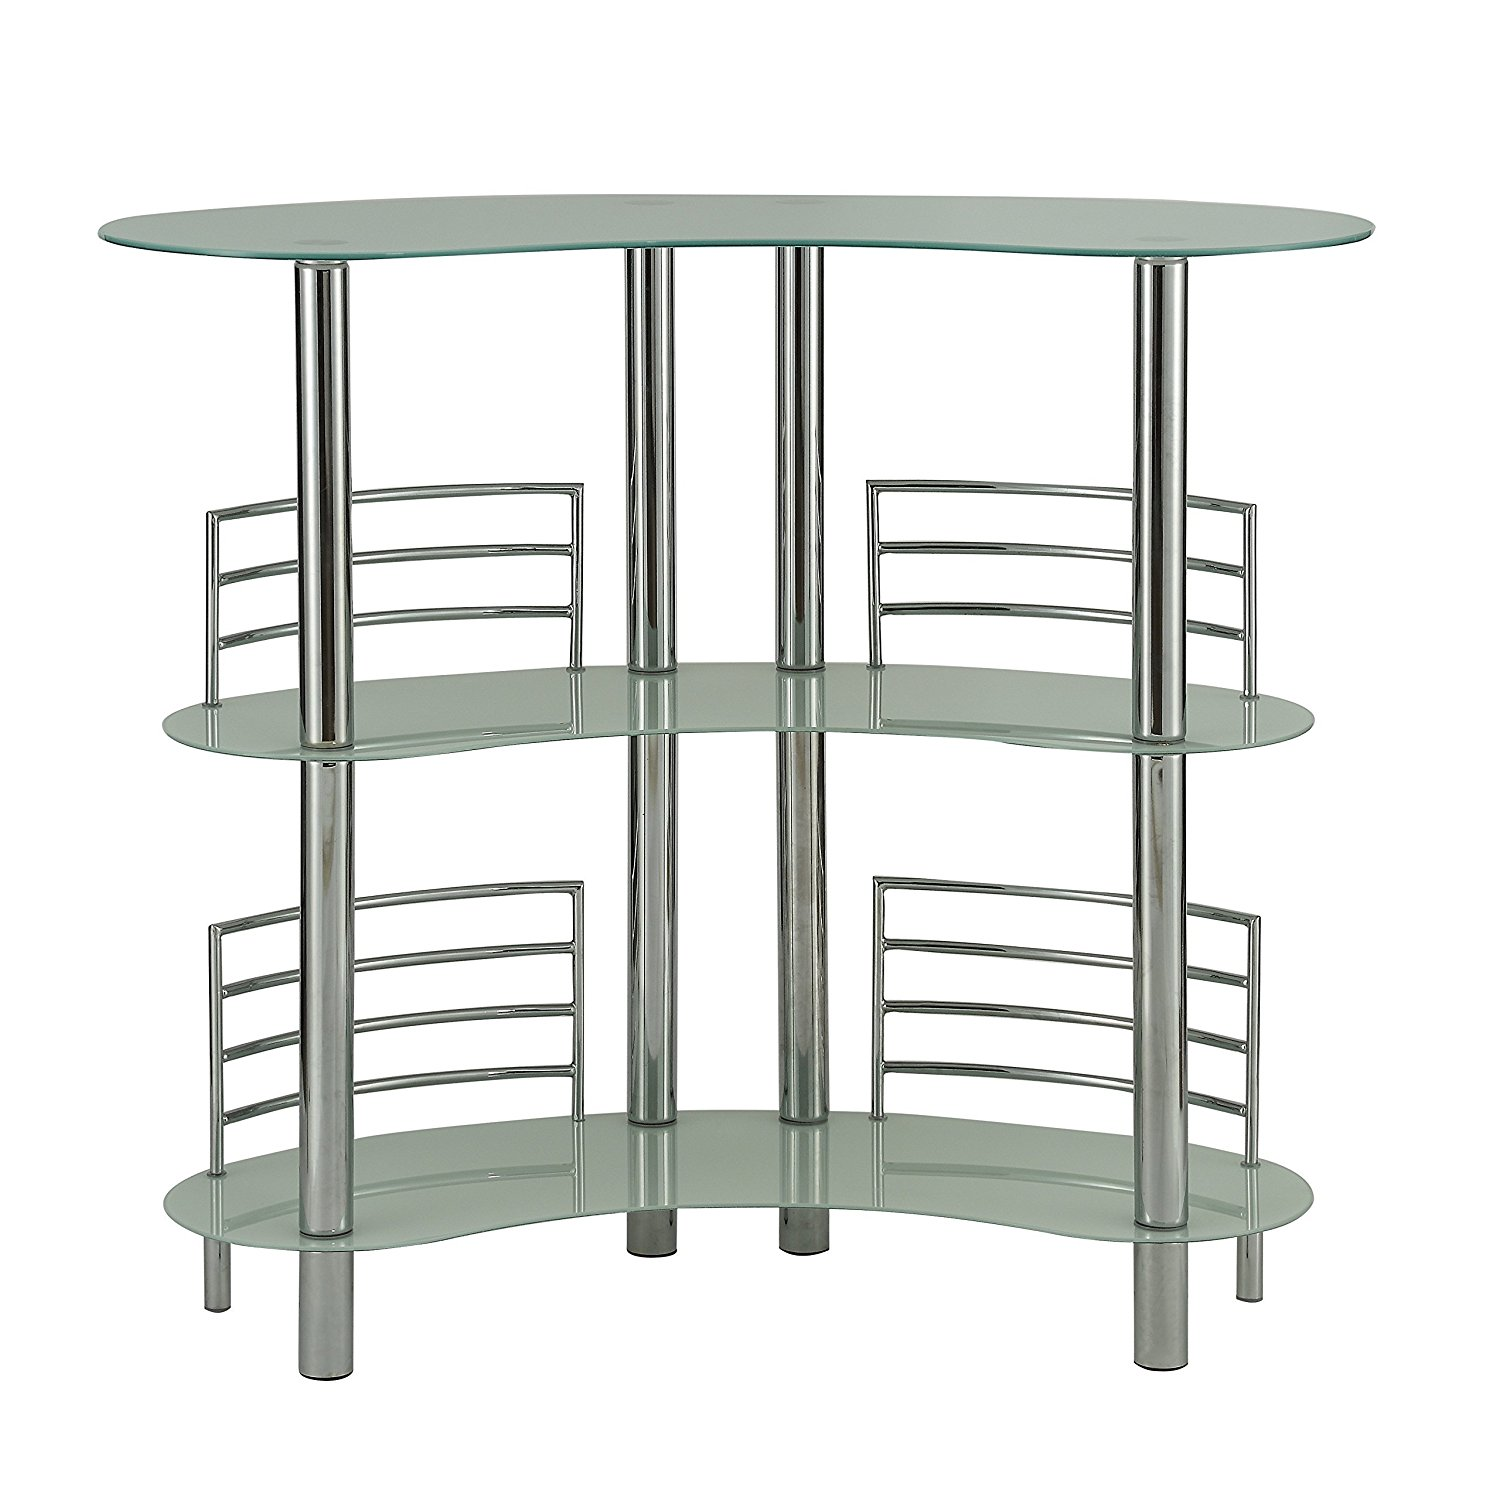 Alton Furniture Paolo Glass Pub Table, Pub Table, Multiple Colors by Fully Wind Co, Ltd.